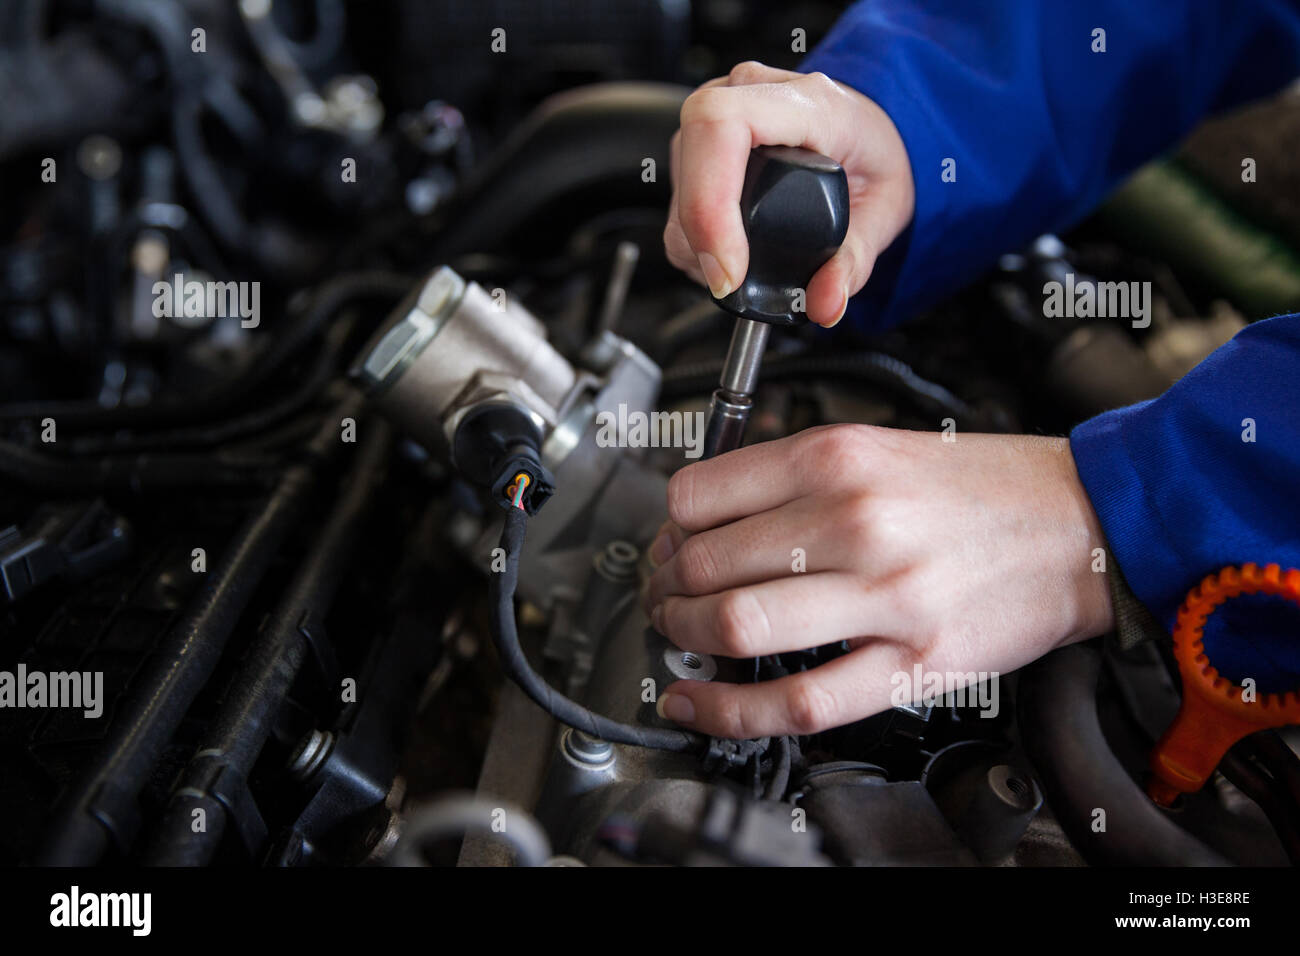 Mechanic servicing car engine - Stock Image